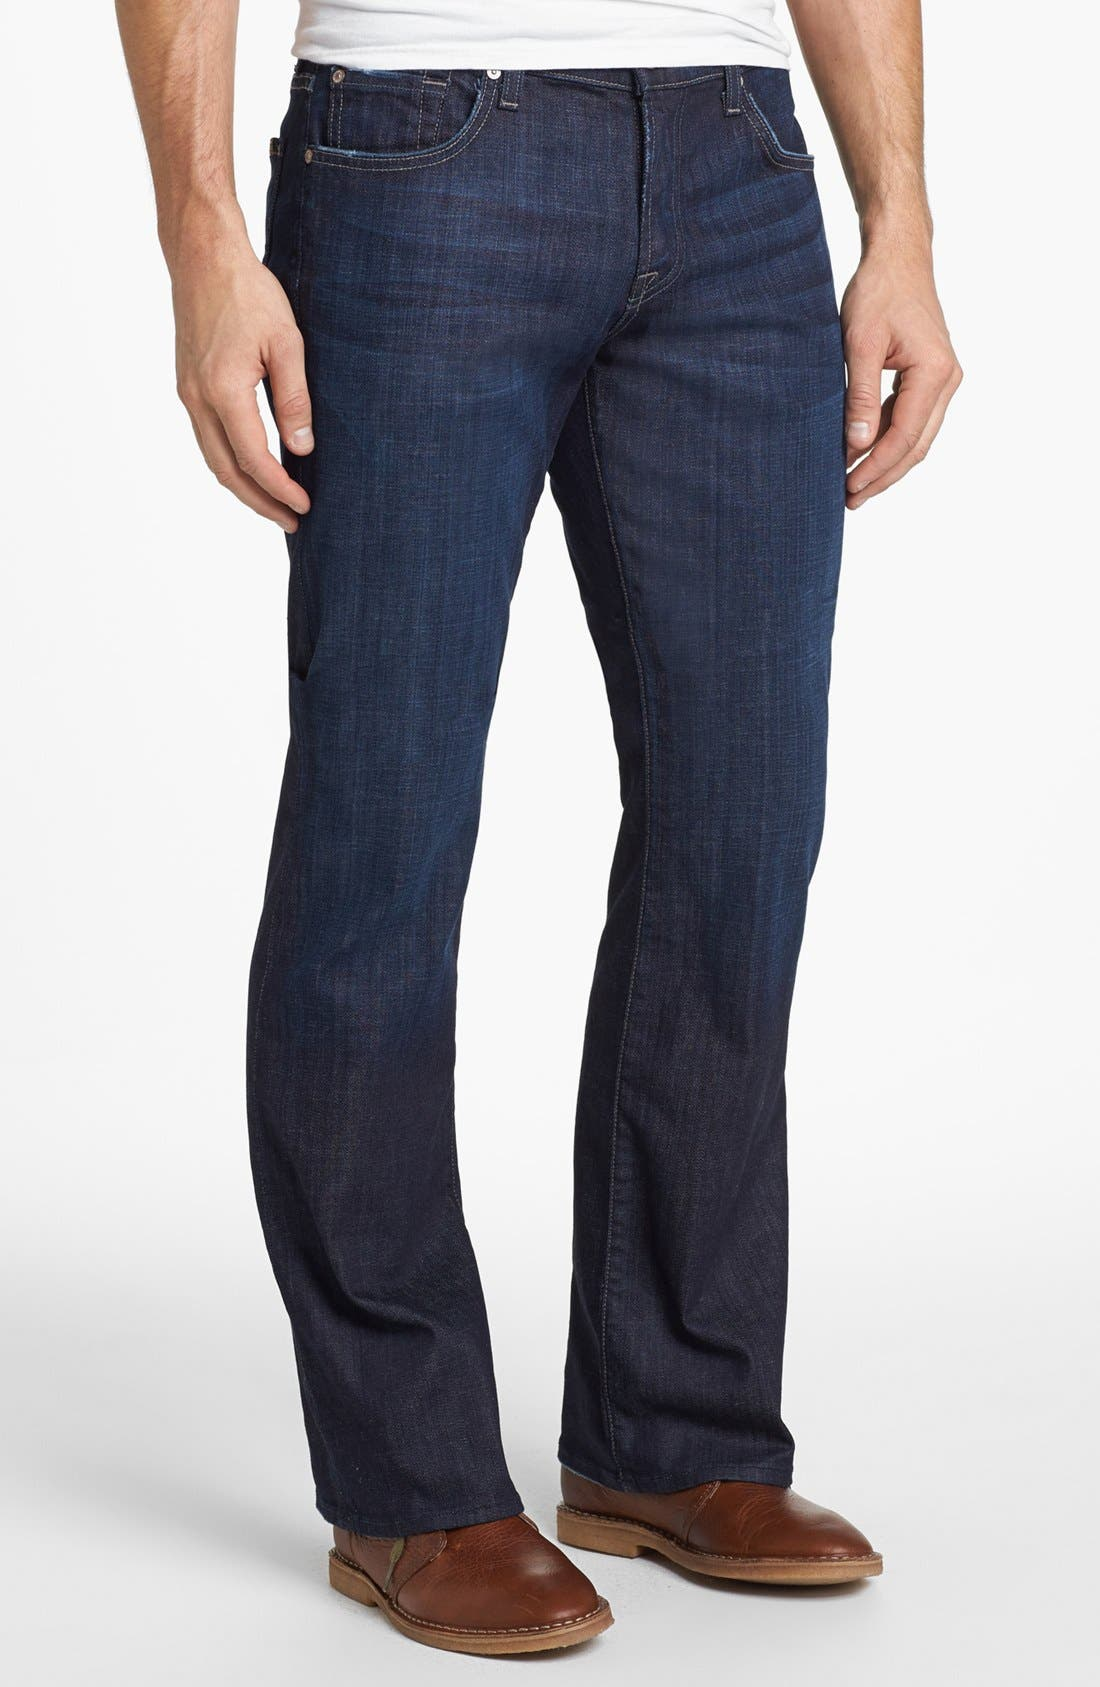 'Brett' Relaxed Bootcut Jeans,                             Main thumbnail 1, color,                             Los Angeles